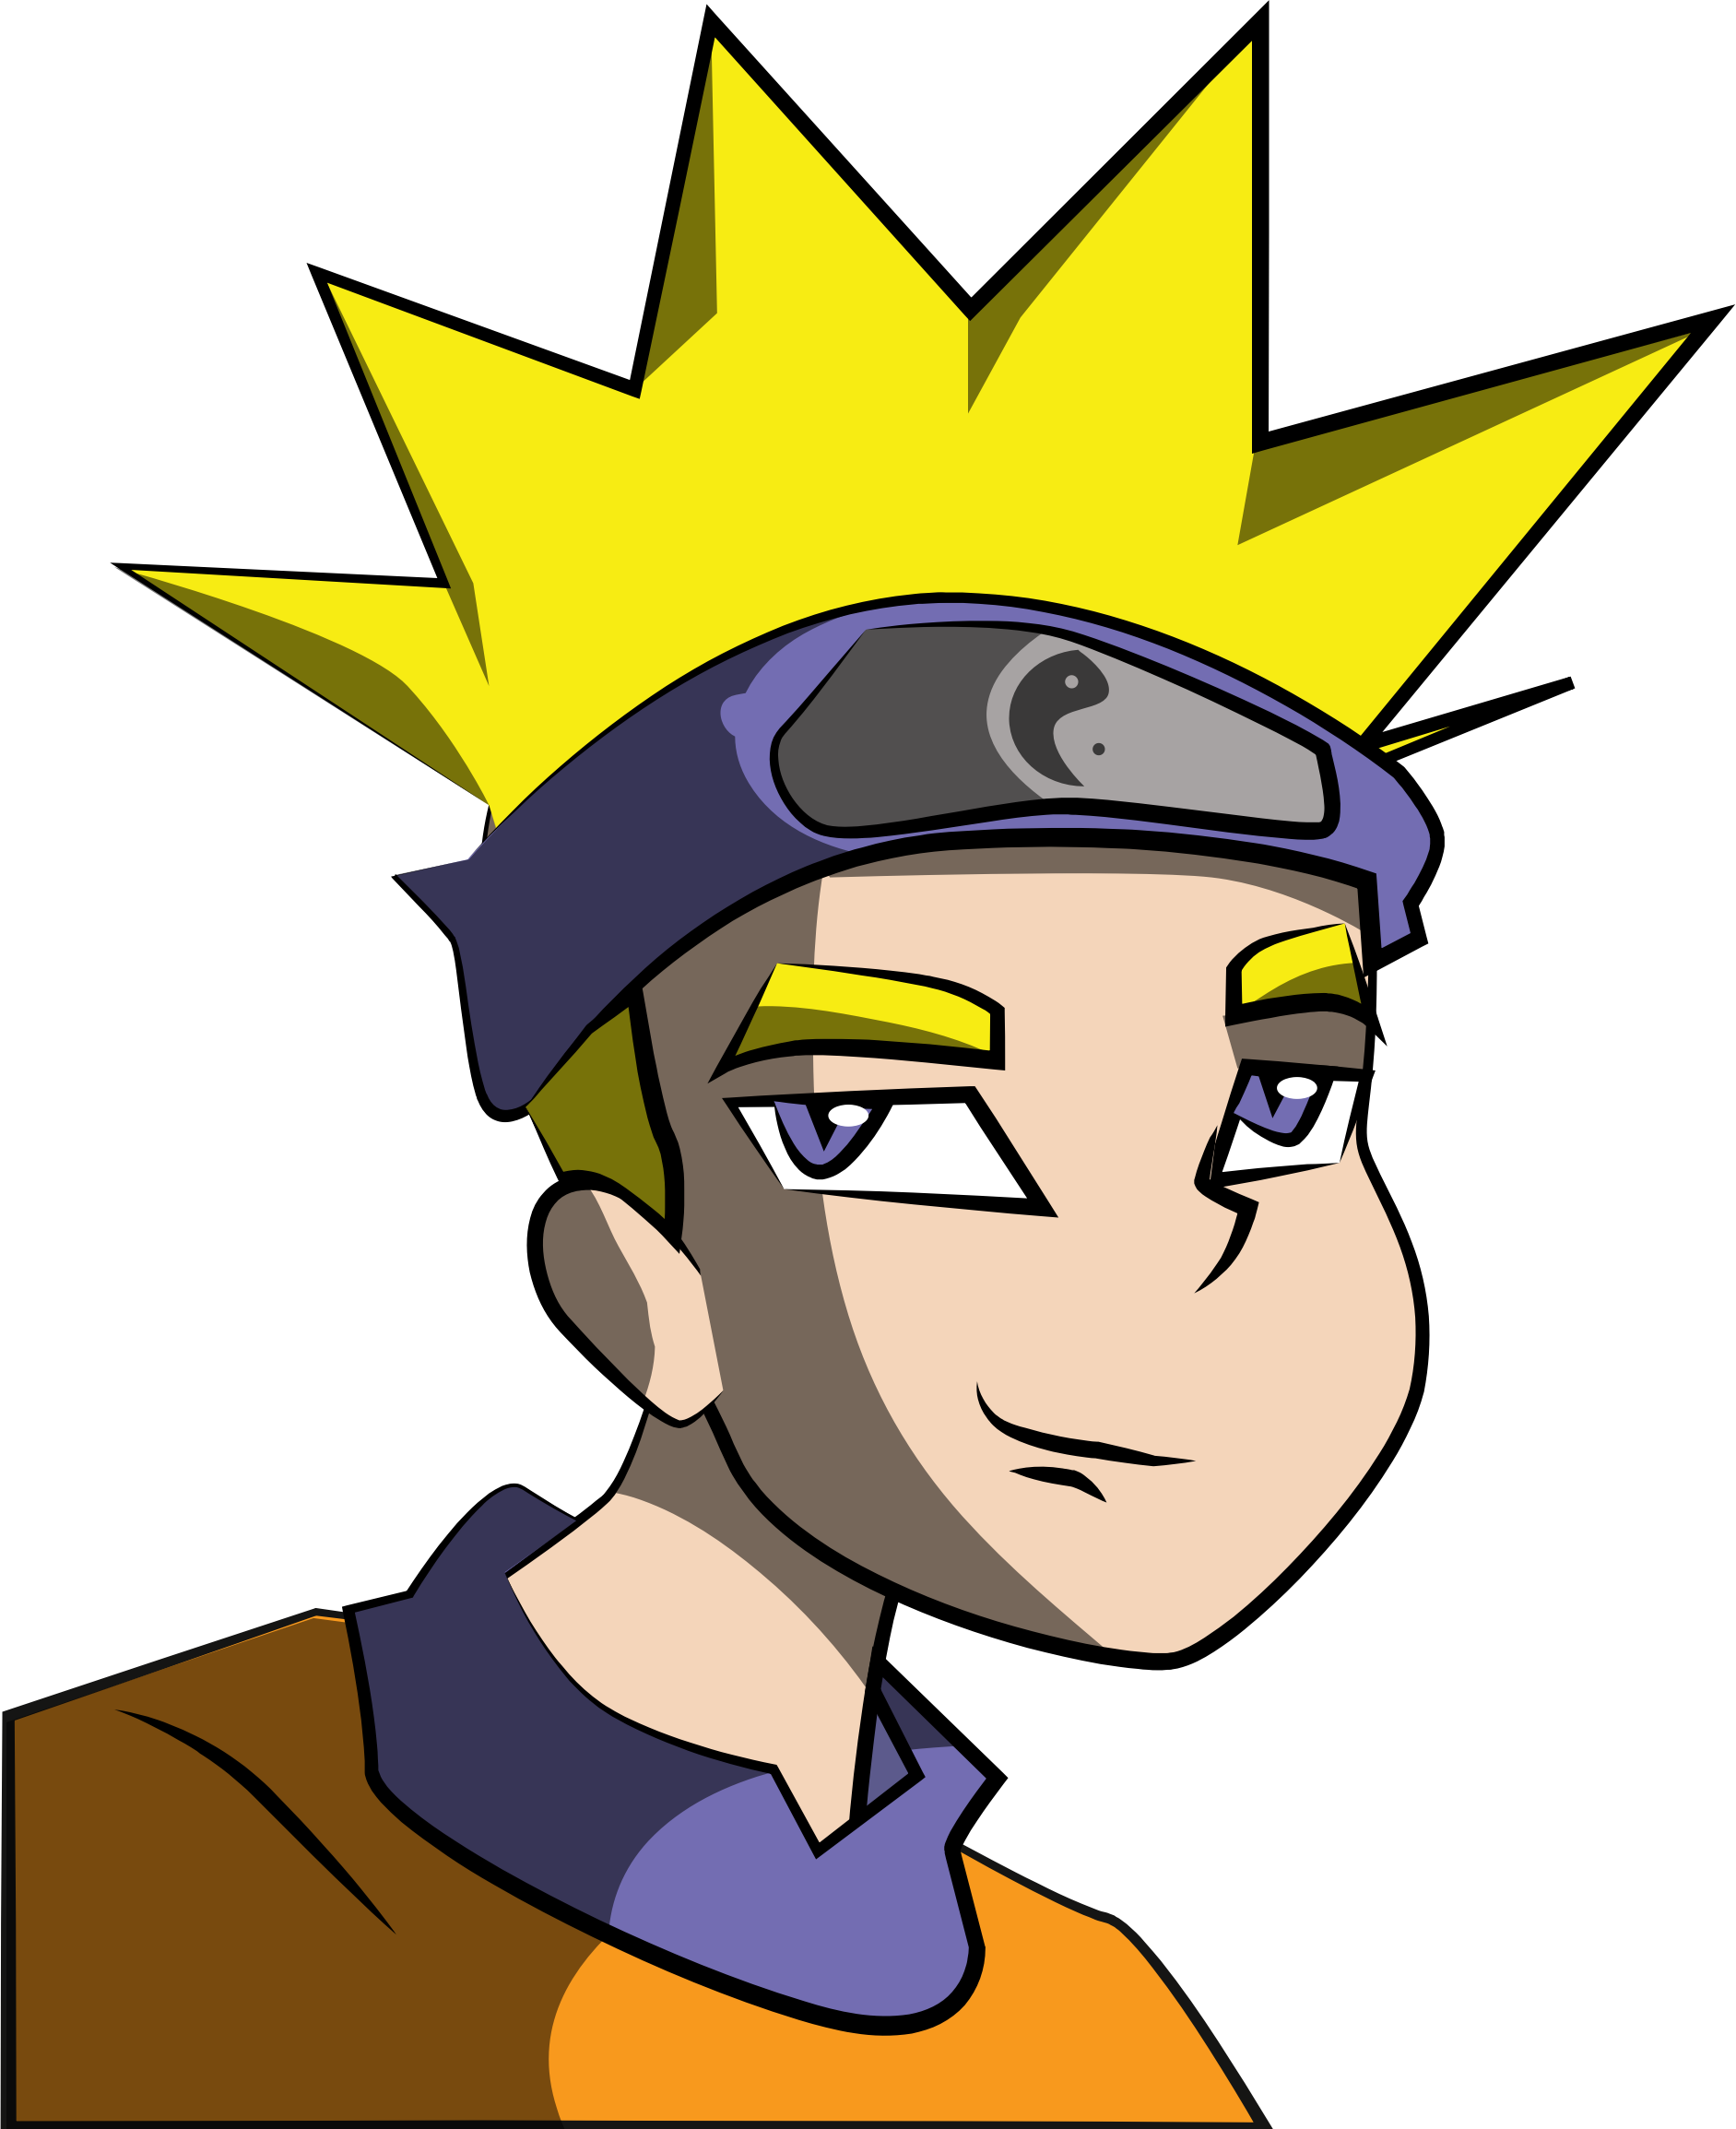 vector royalty free Anime clipart. Boy big image png.